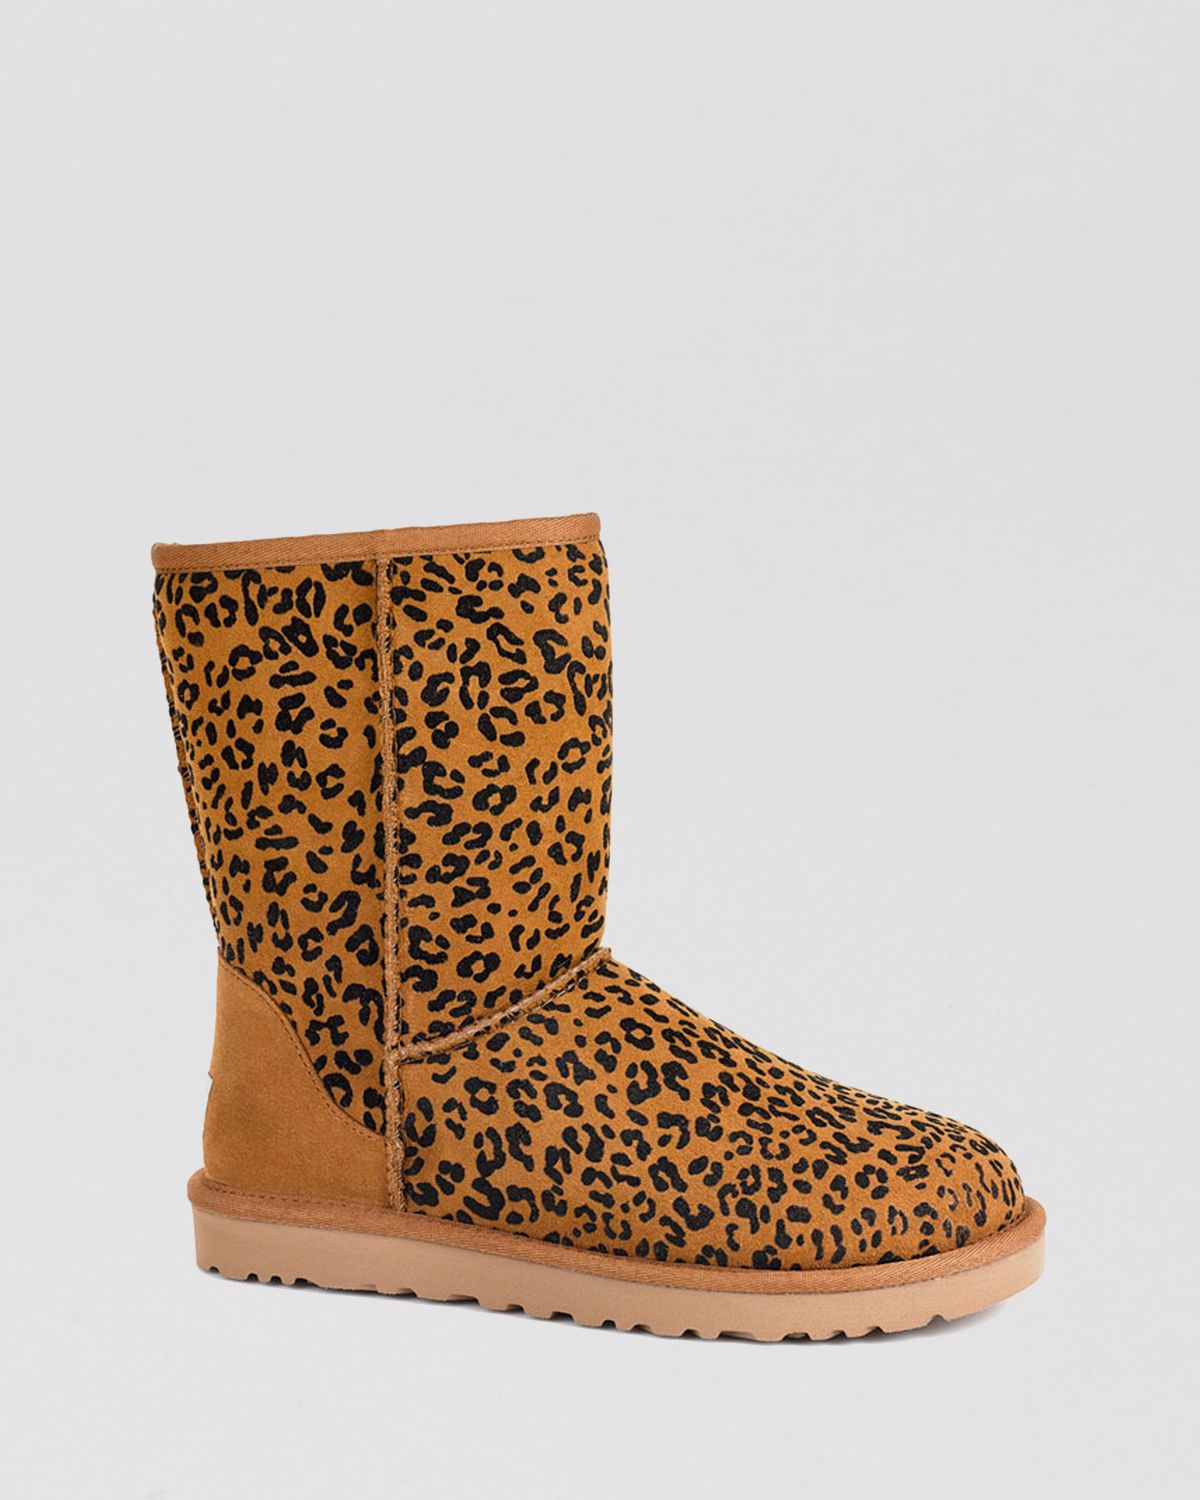 Let's talk about marvellous combinations of shoes. In today's post I want to draw your attention to this interesting topic called: how to wear leopard ankle boots.